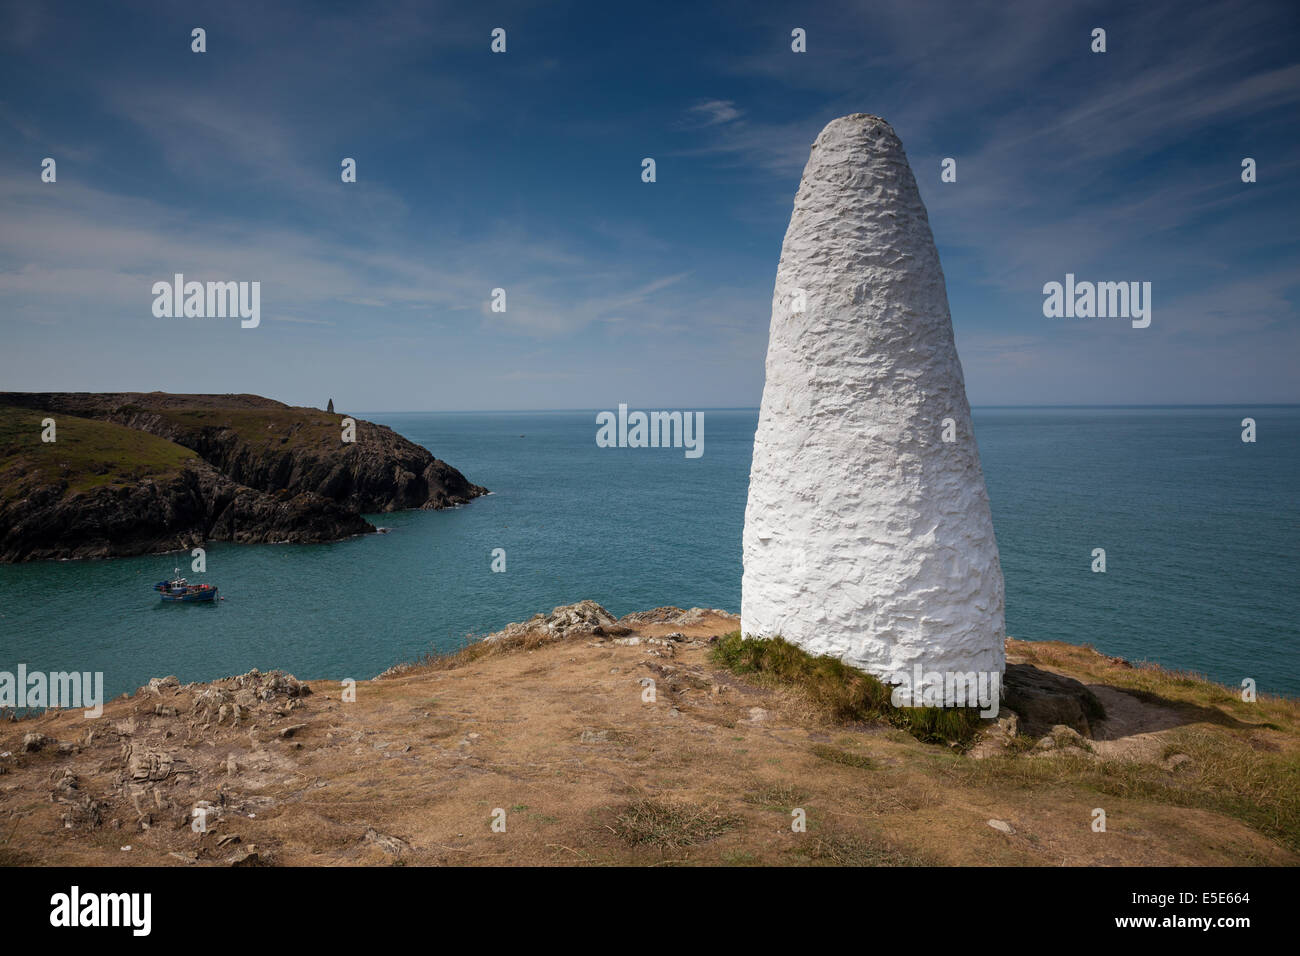 White stone beacon at the entrance to Porthgain Harbour, near Fishguard, Pembrokeshire, Wales - Stock Image